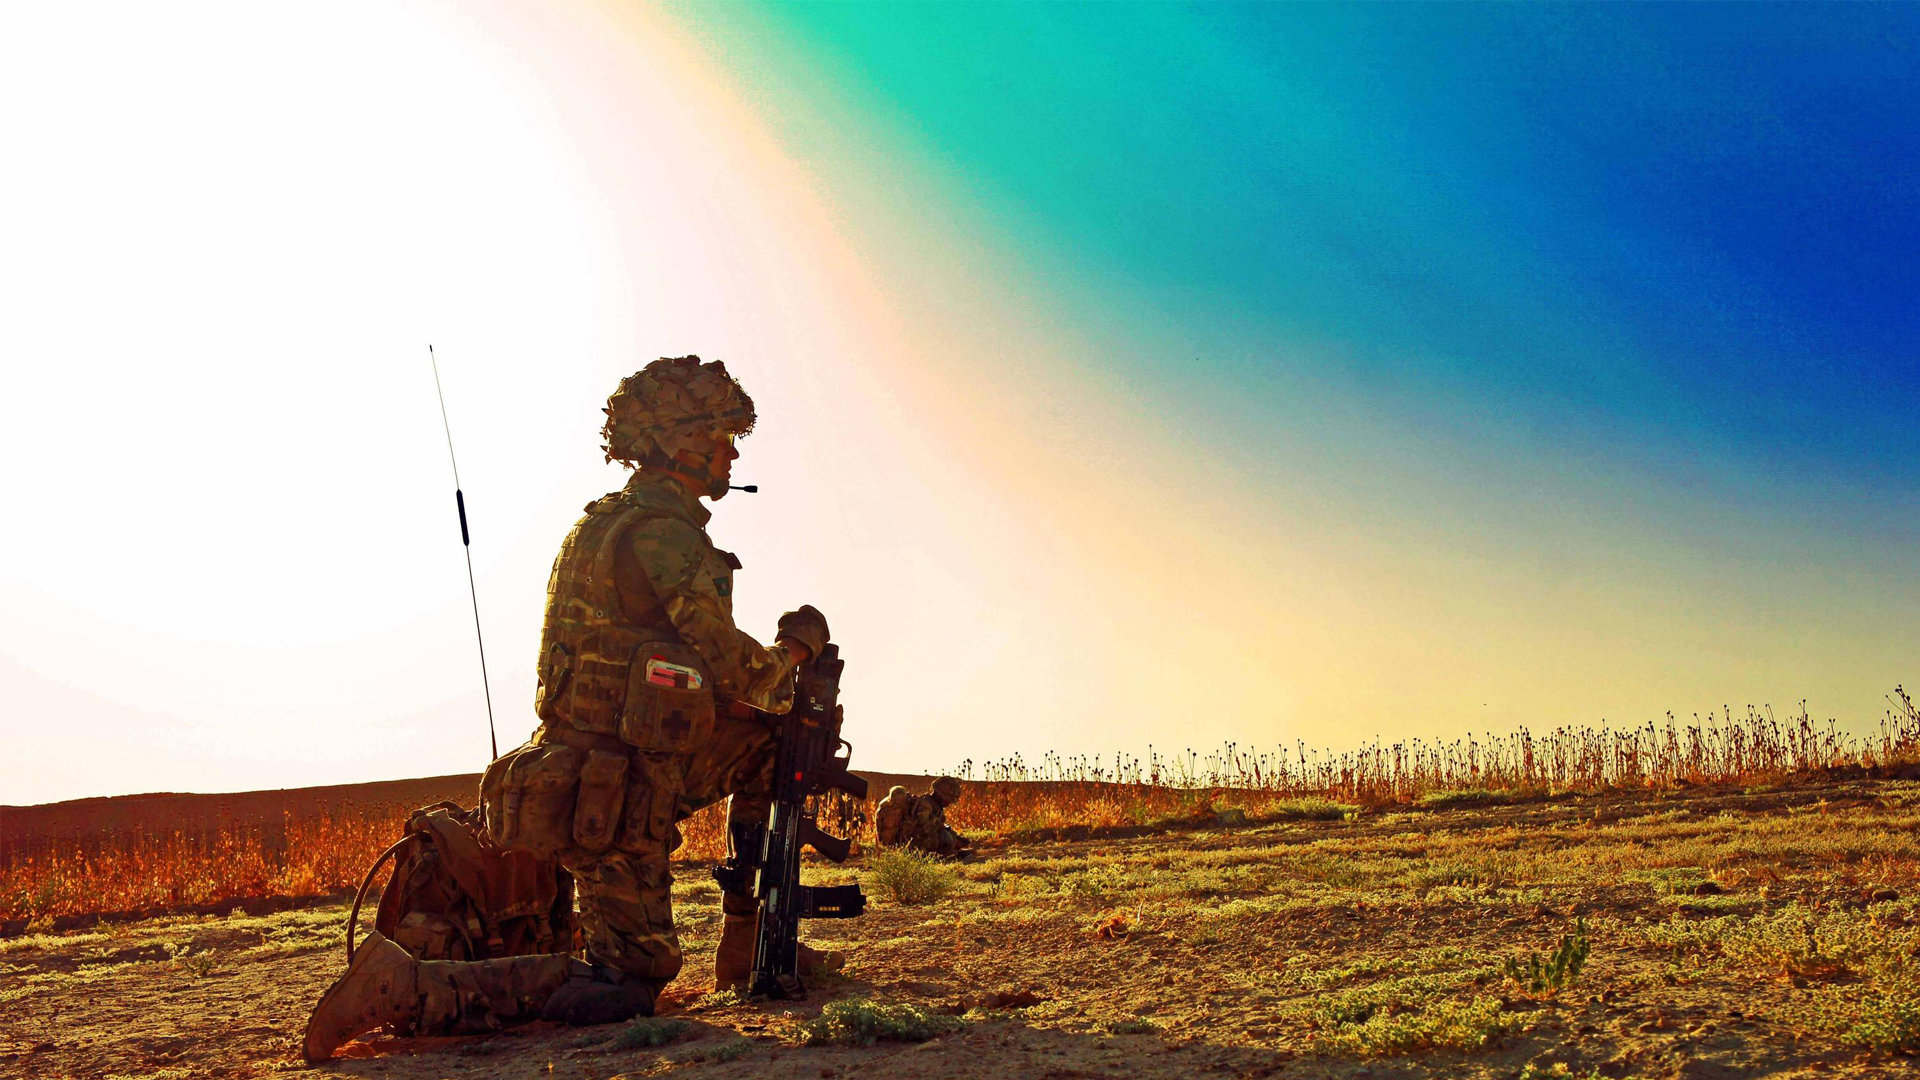 Army wallpapers 1920x1080 full hd 1080p desktop backgrounds - Army wallpaper hd 1080p ...